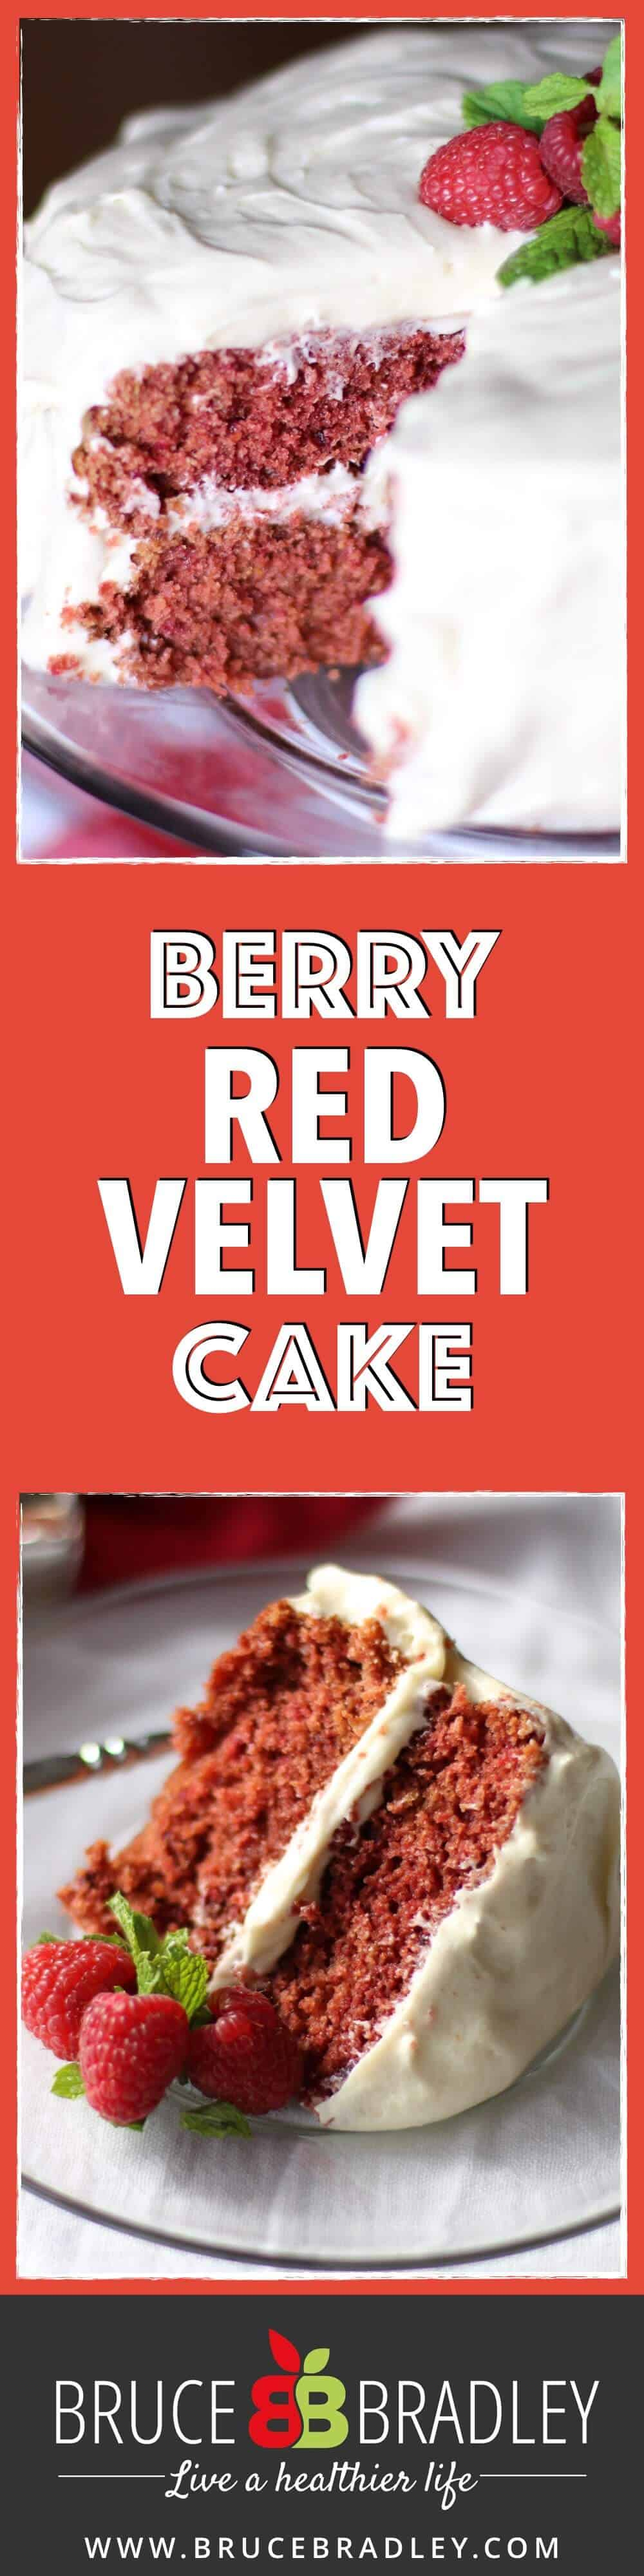 Finally! A Red Velvet Cake recipe that contains real ingredients, no artificial colors, and tastes delicious! Raspberries and cocoa give this dessert a wonderfully delicious, rich, fresh taste!